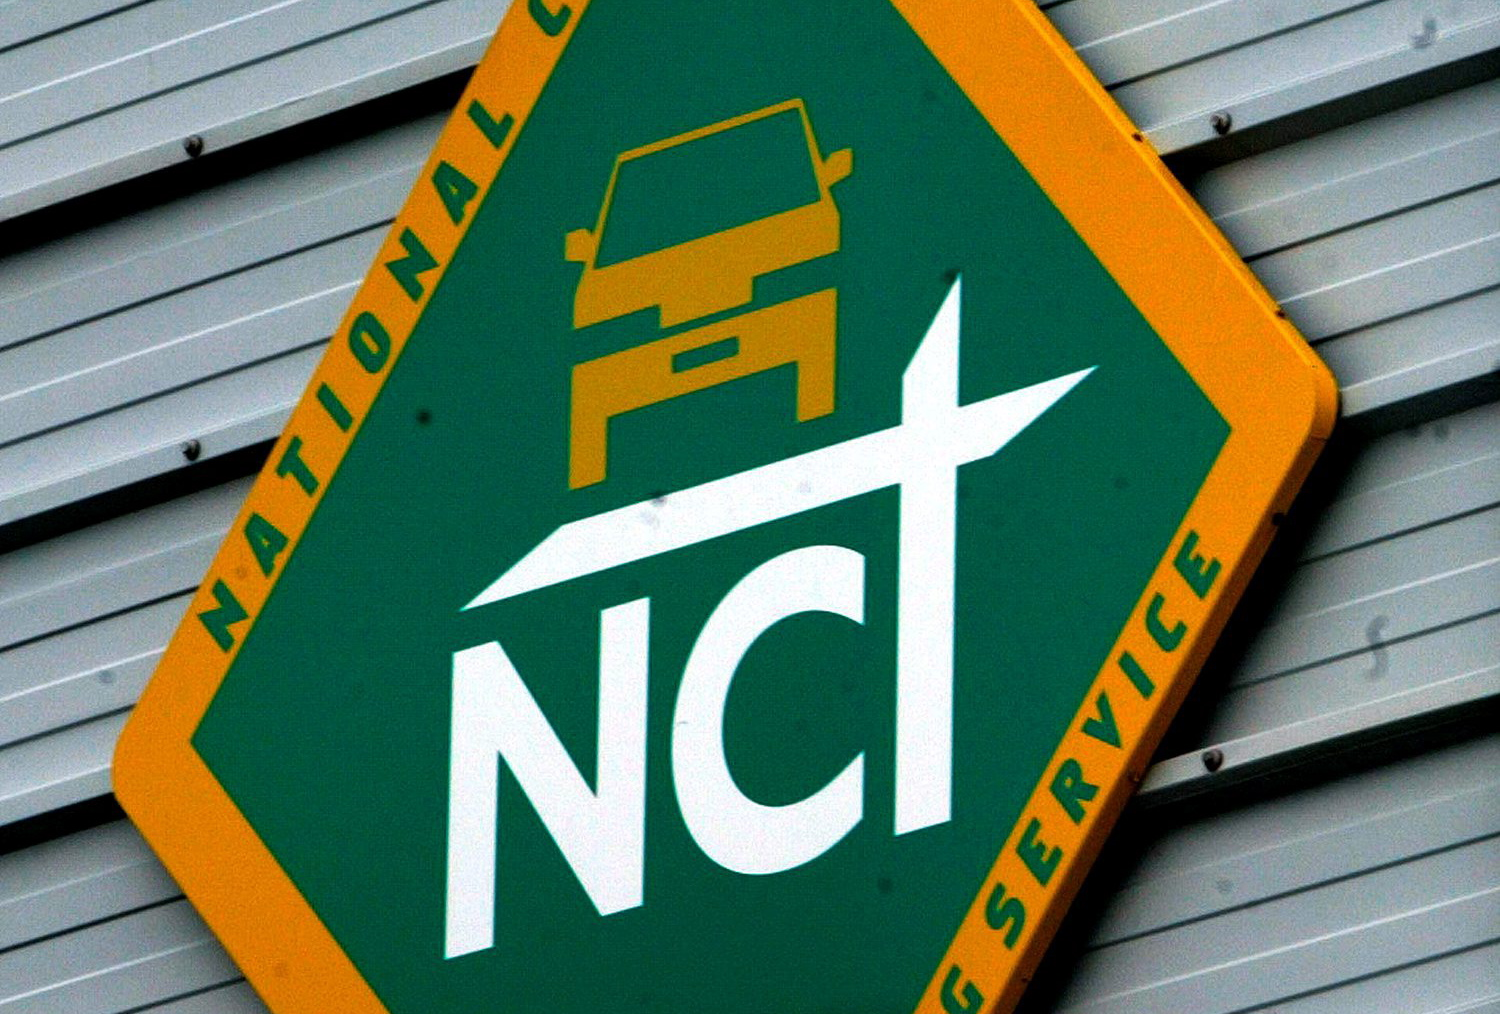 NCT Centre logo image,